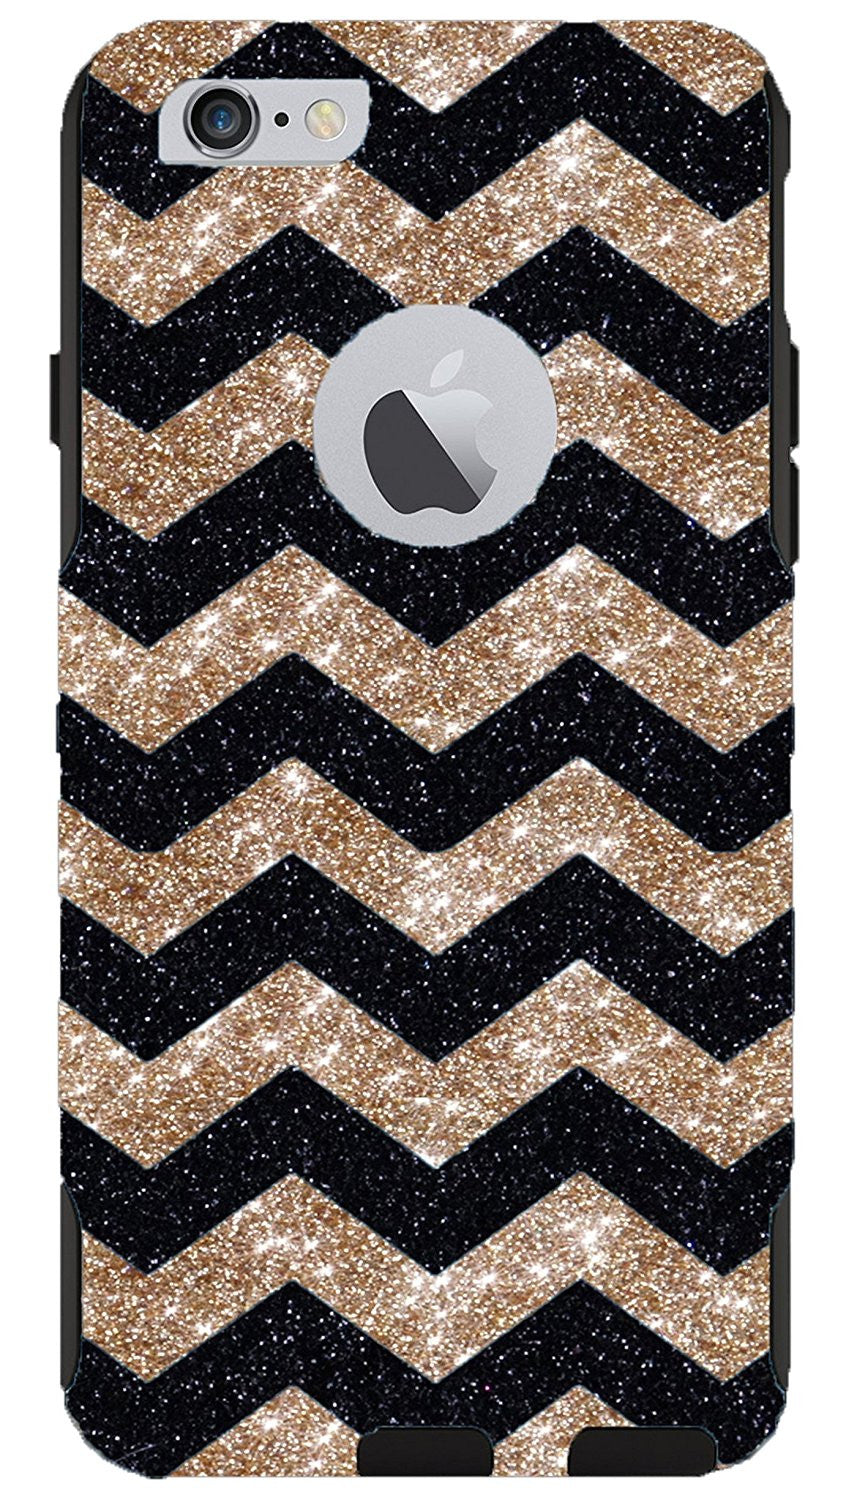 best website e12a9 267e3 OtterBox iPhone 6 Plus Case - OtterBox Commuter Series Custom Glitter Case  for iPhone 6 Plus, Retail Packaging - Gold with Small Chevron